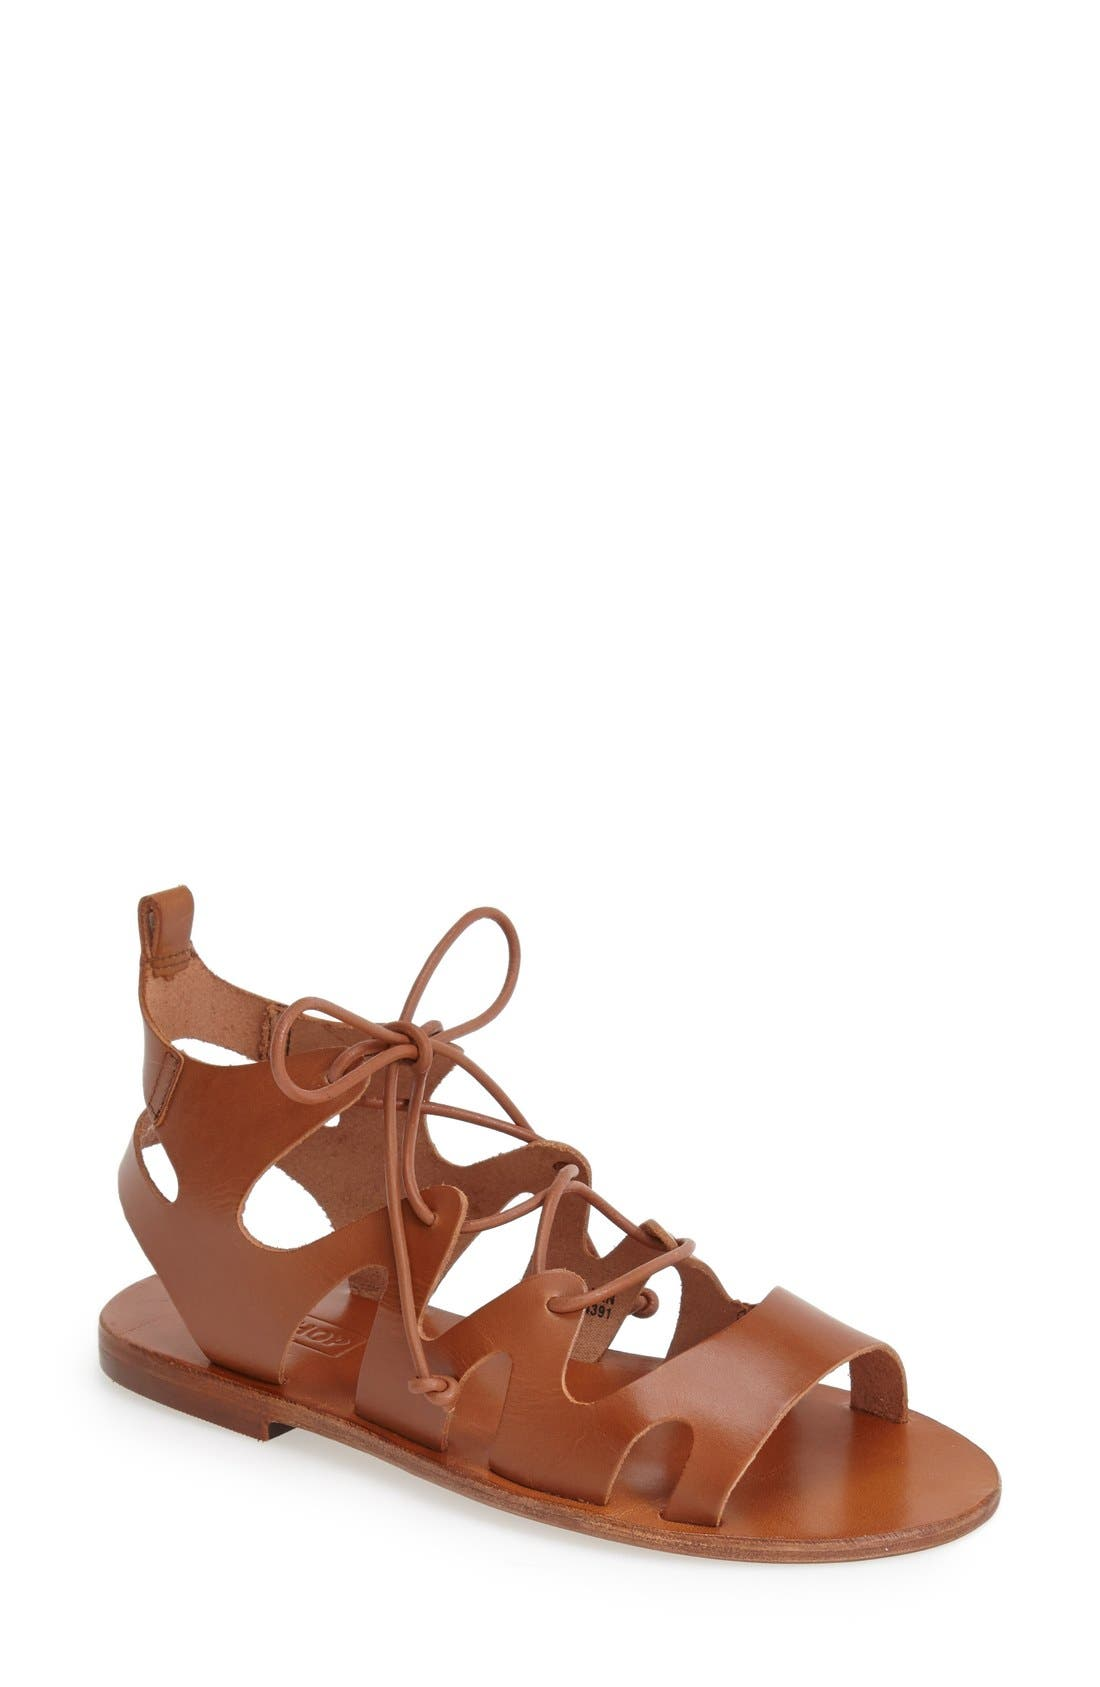 TOPSHOP, 'Fig' Cutout Lace-Up Gladiator Sandal, Main thumbnail 1, color, 210